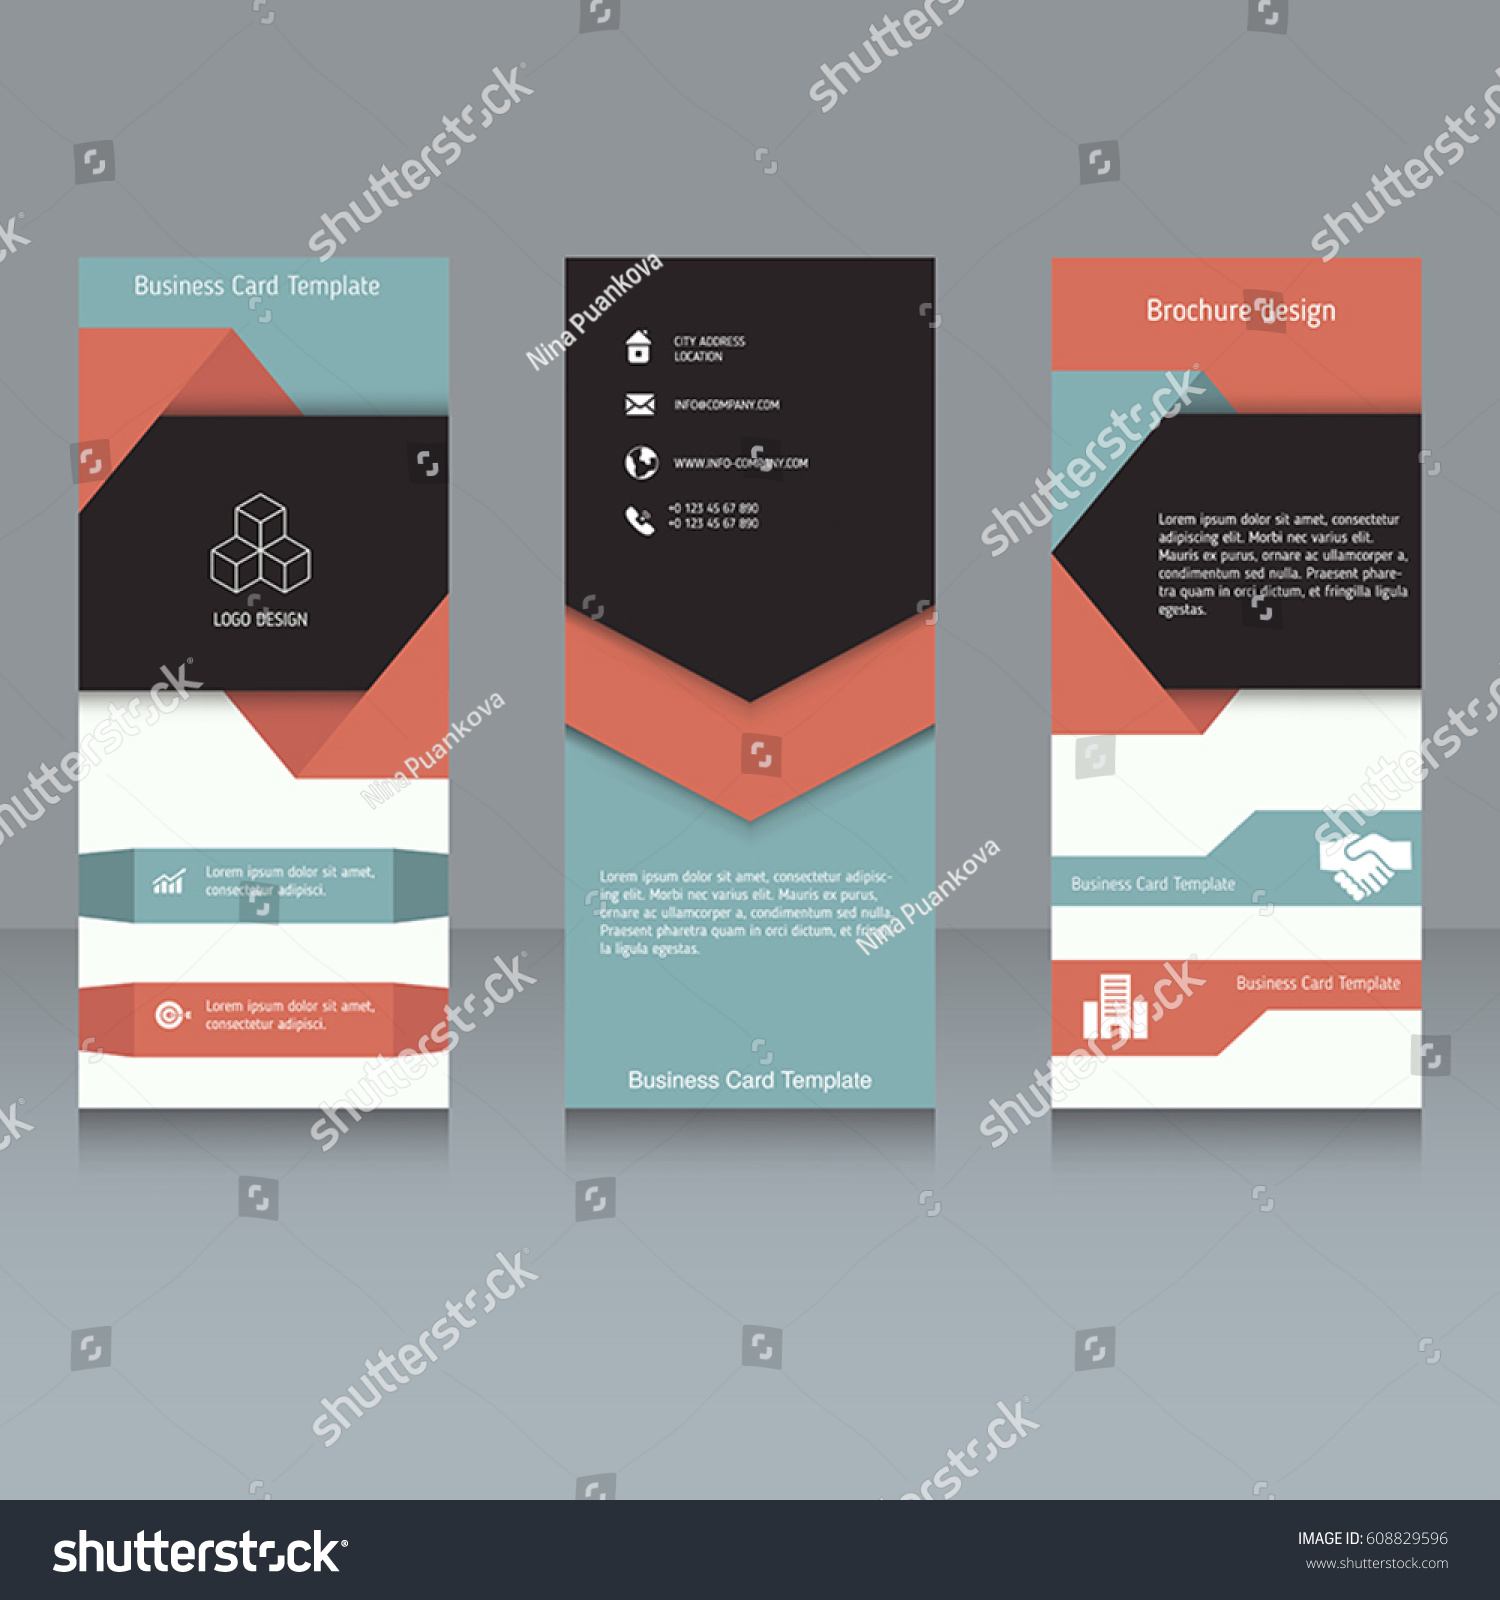 Tri folded business cards zrom tri fold business card template word caroleandellie com friedricerecipe Image collections